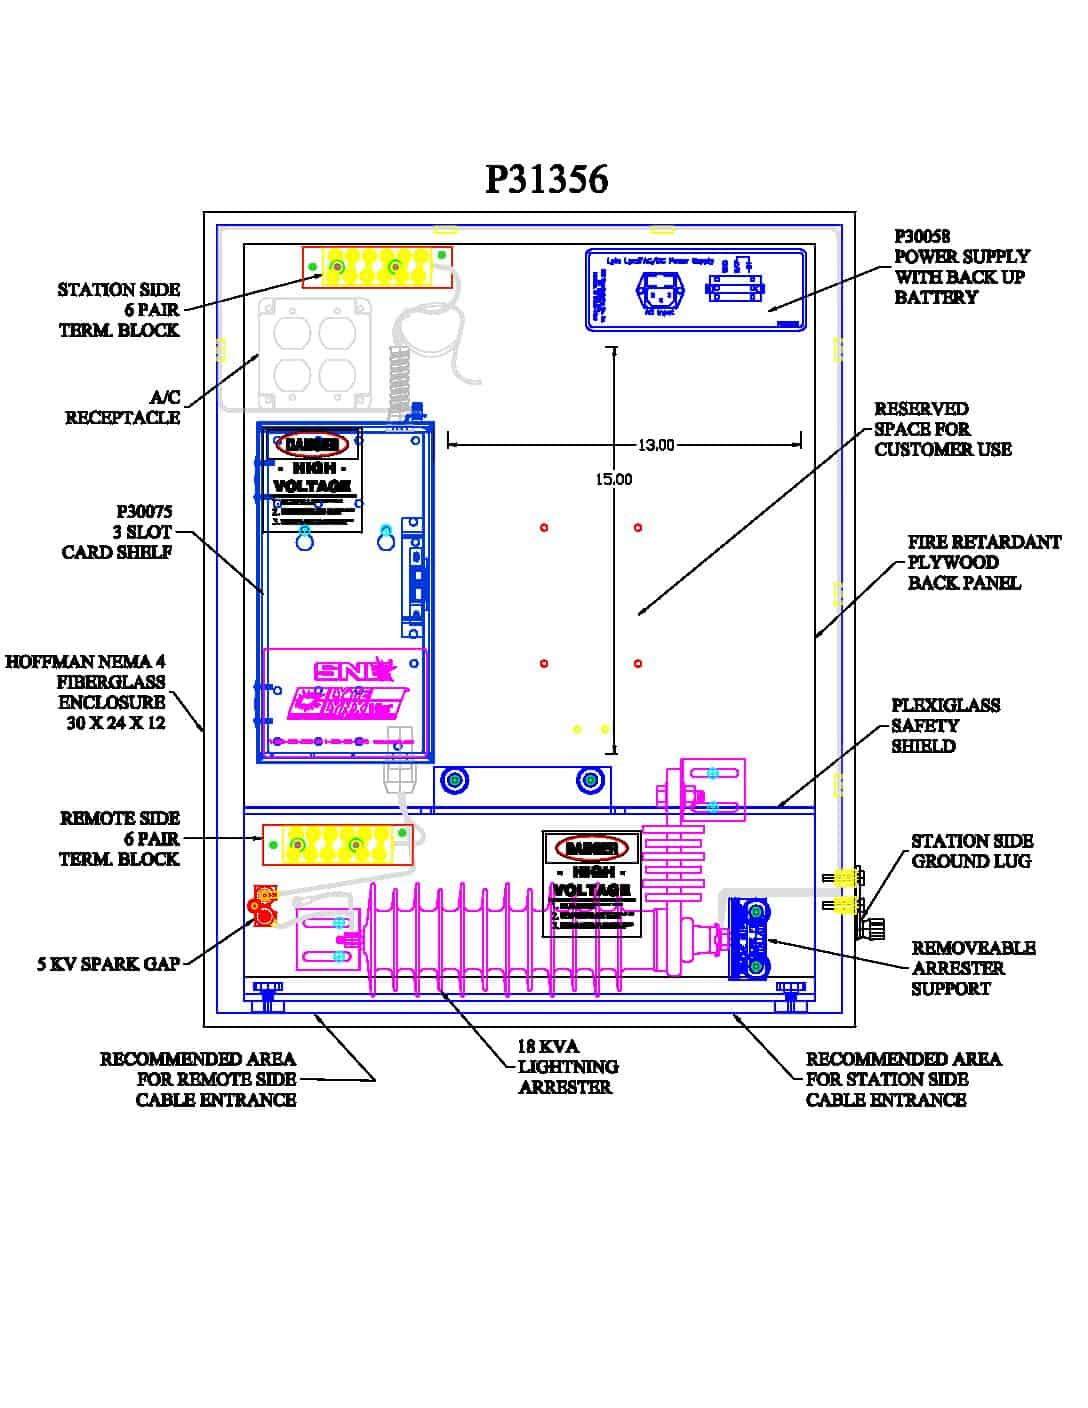 P31356 Turnkey Protection Packages – 3 slot PDF thumbnail